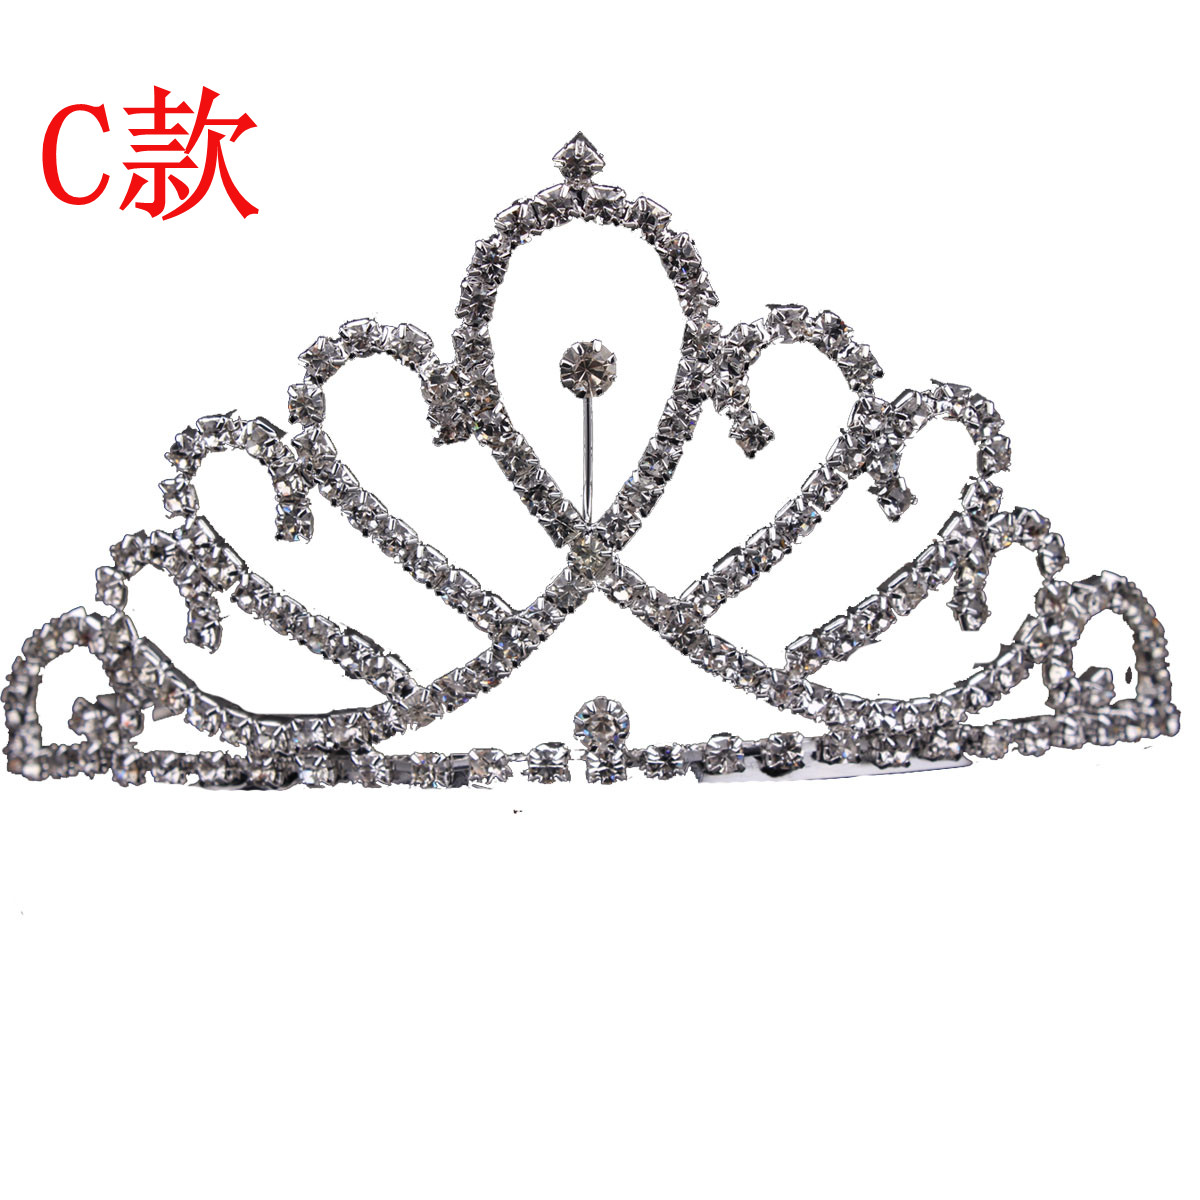 The bride accessories hair accessory hair accessory insert comb hair accessory rhinestone(China (Mainland))